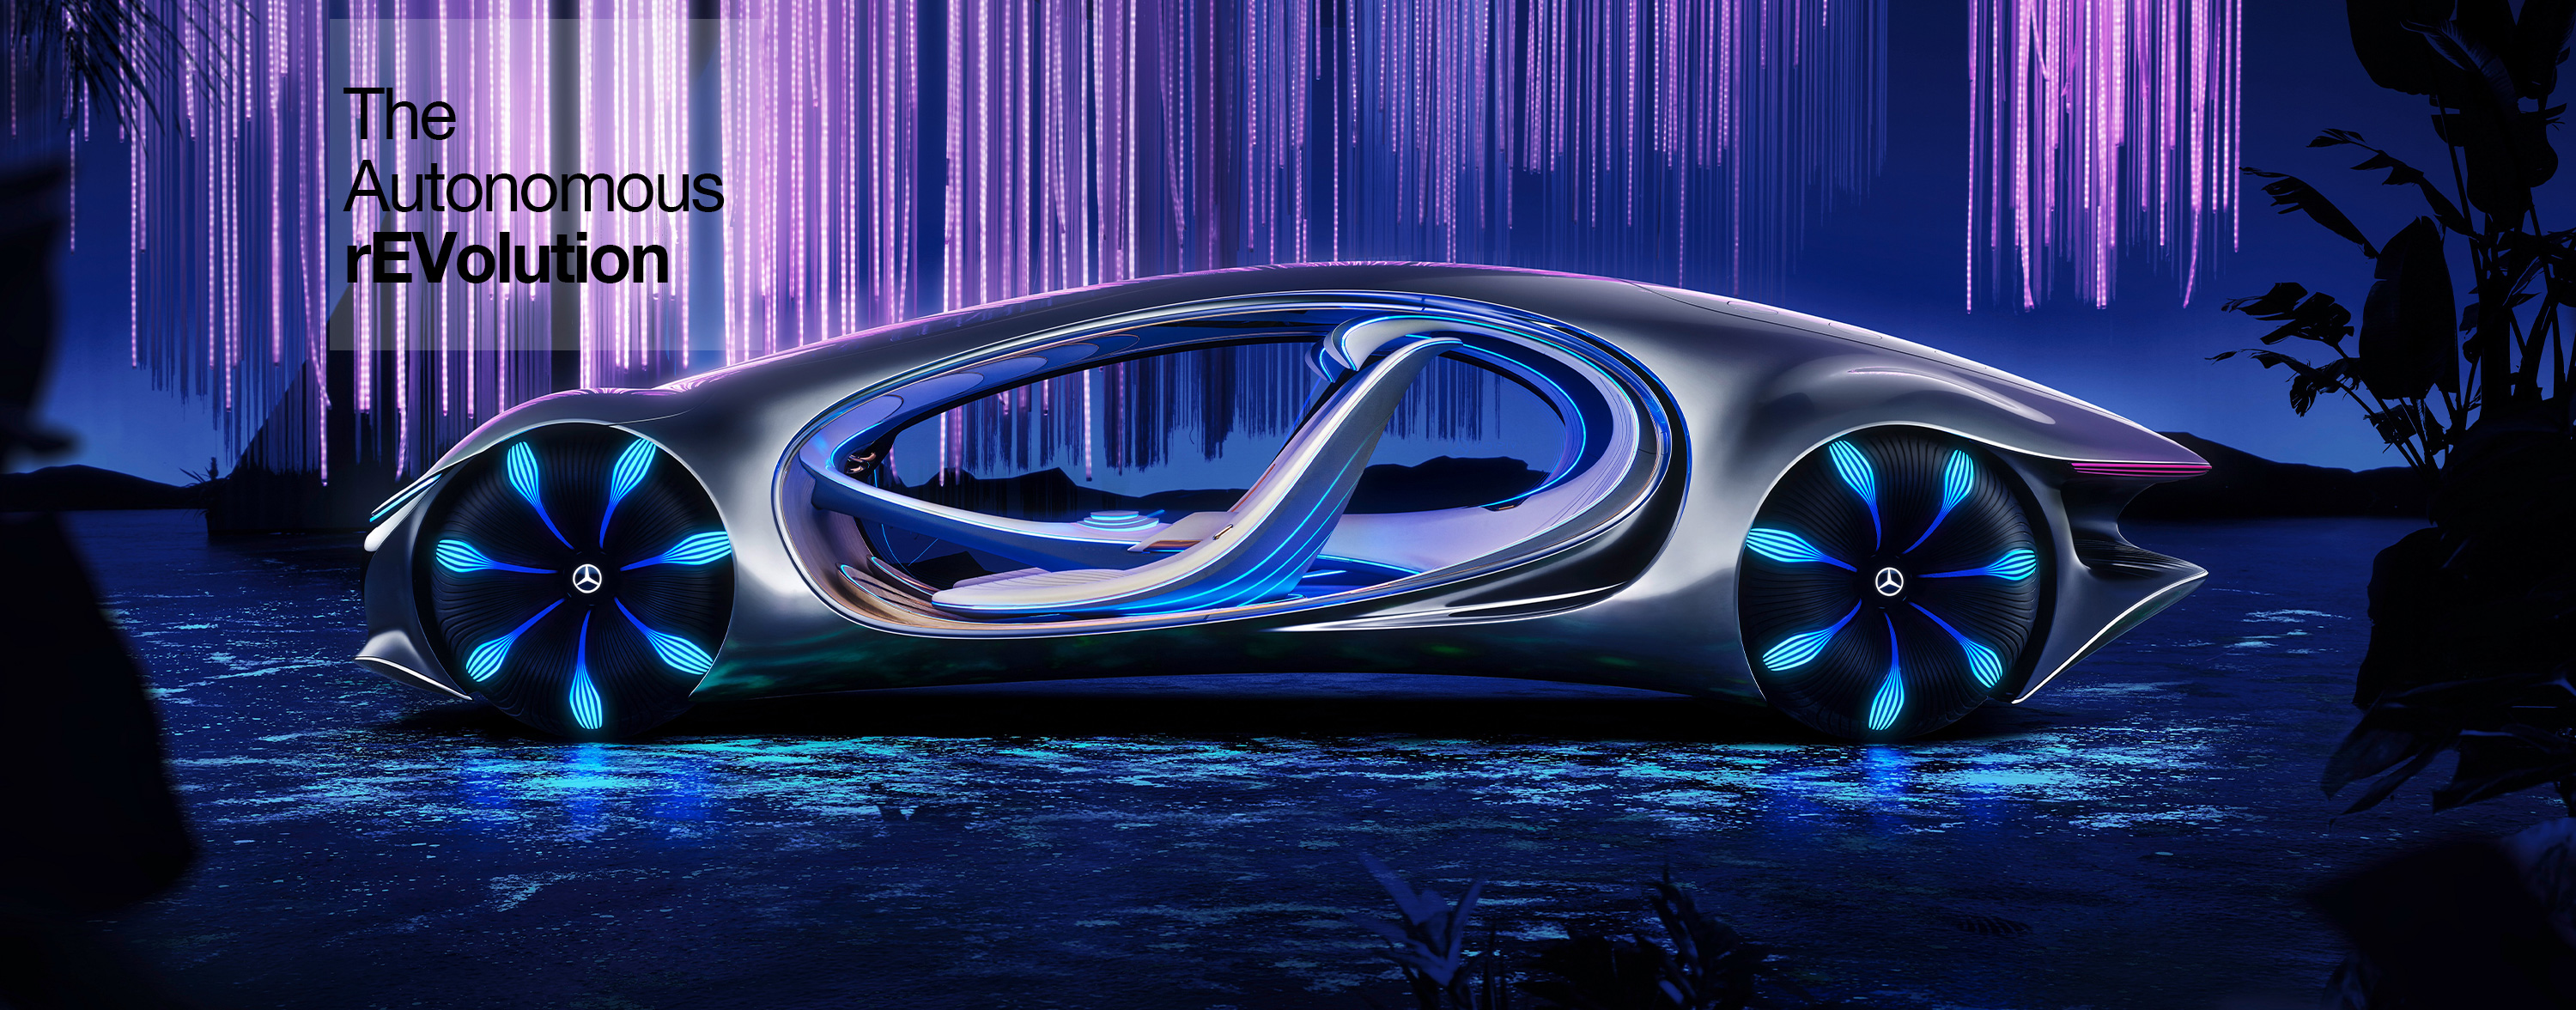 Mercedes Blends Tech And Nature At CES 2020